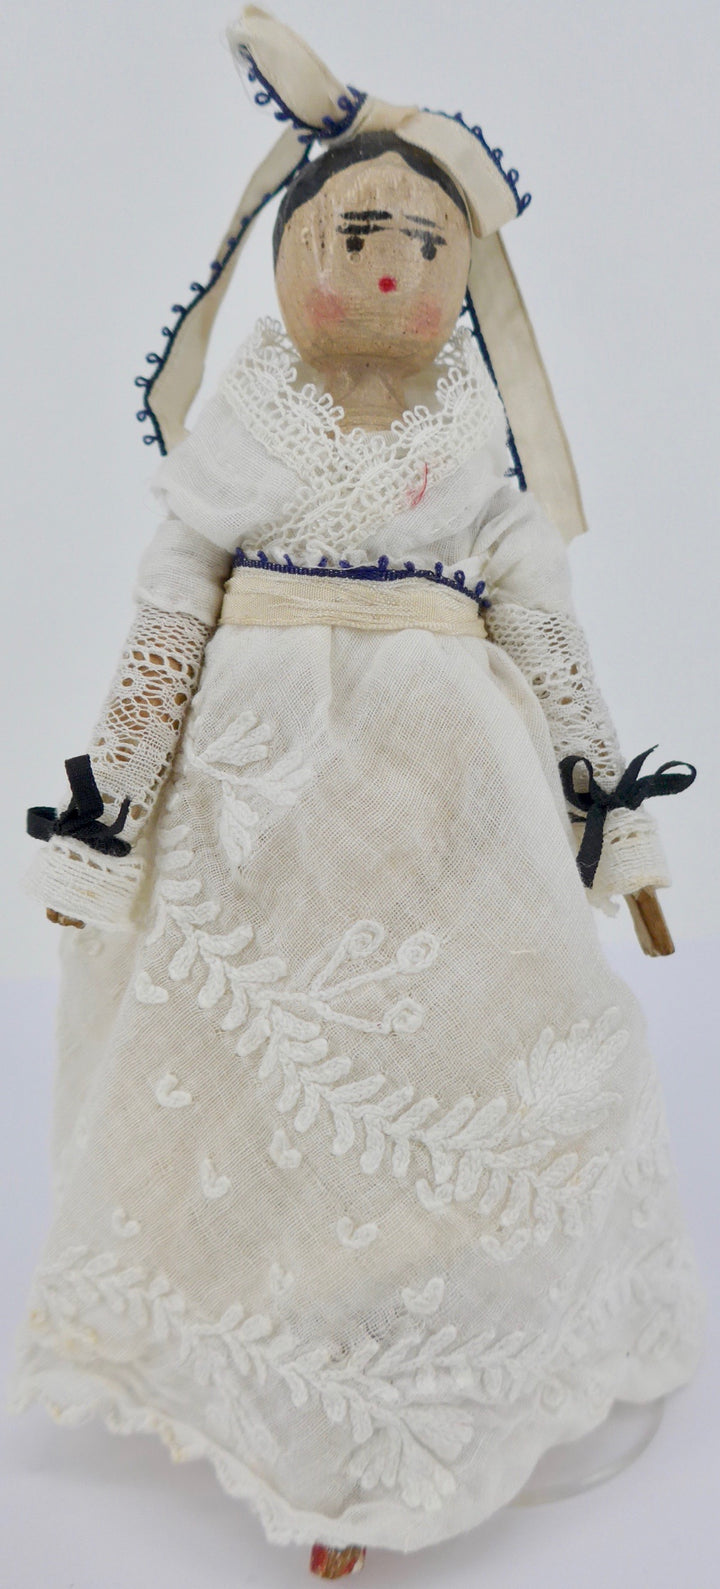 vintage jointed wooden peg doll, off-white